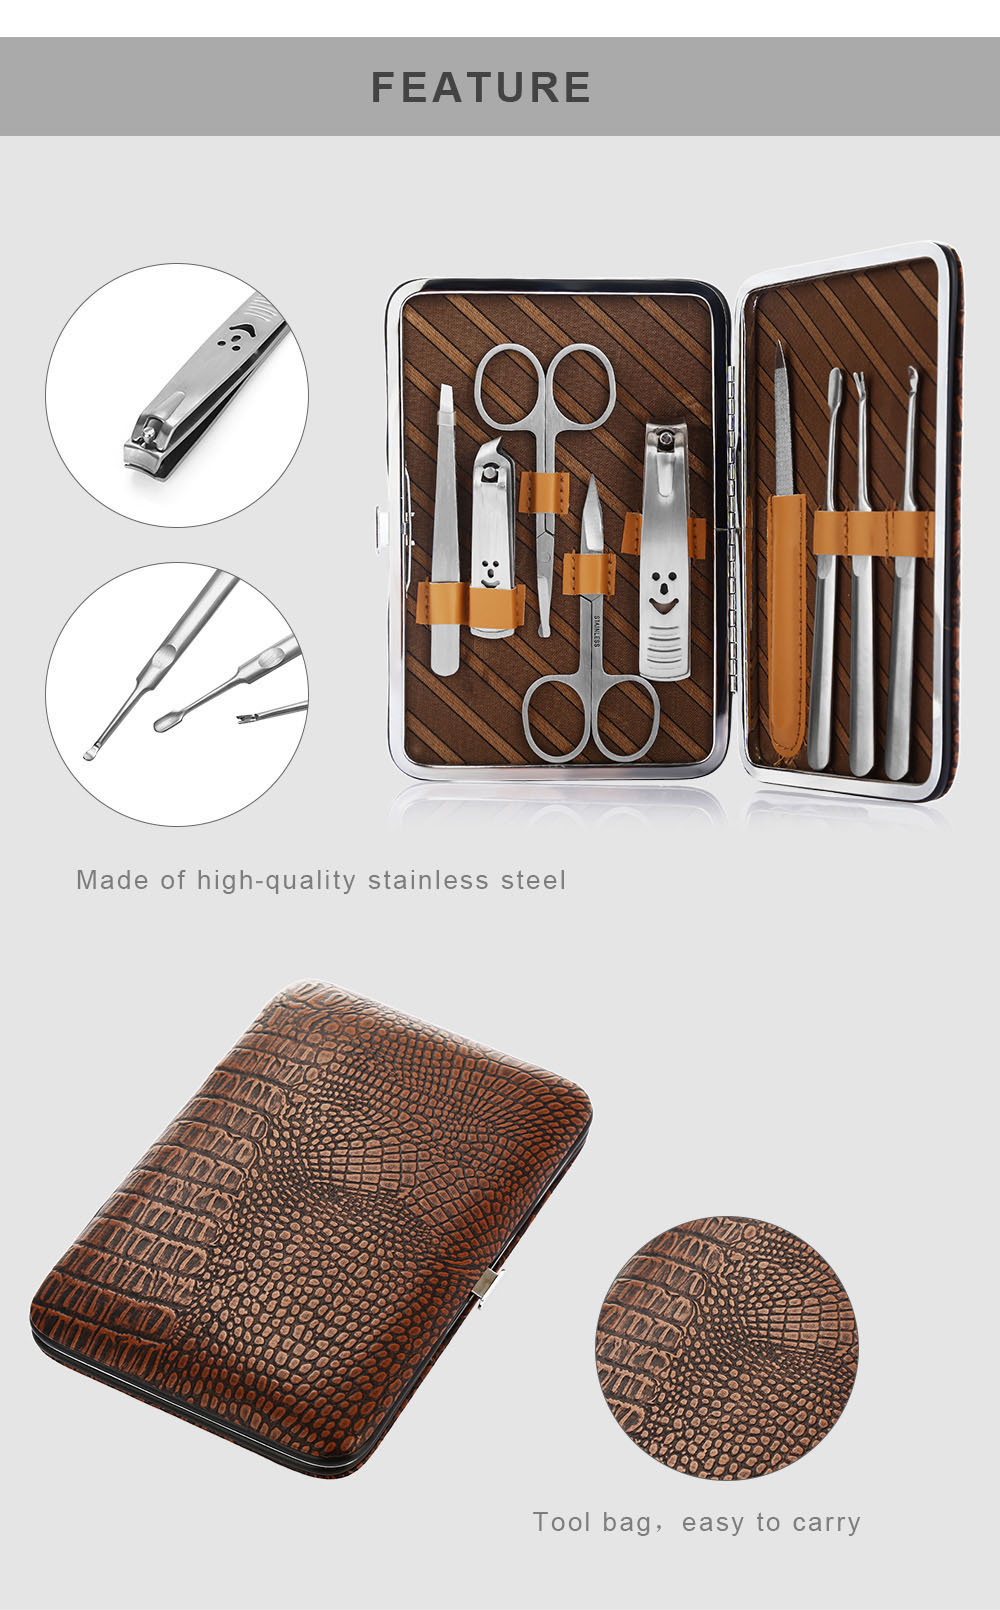 GS908 9 in 1 Manicure Set with Delicate Bag